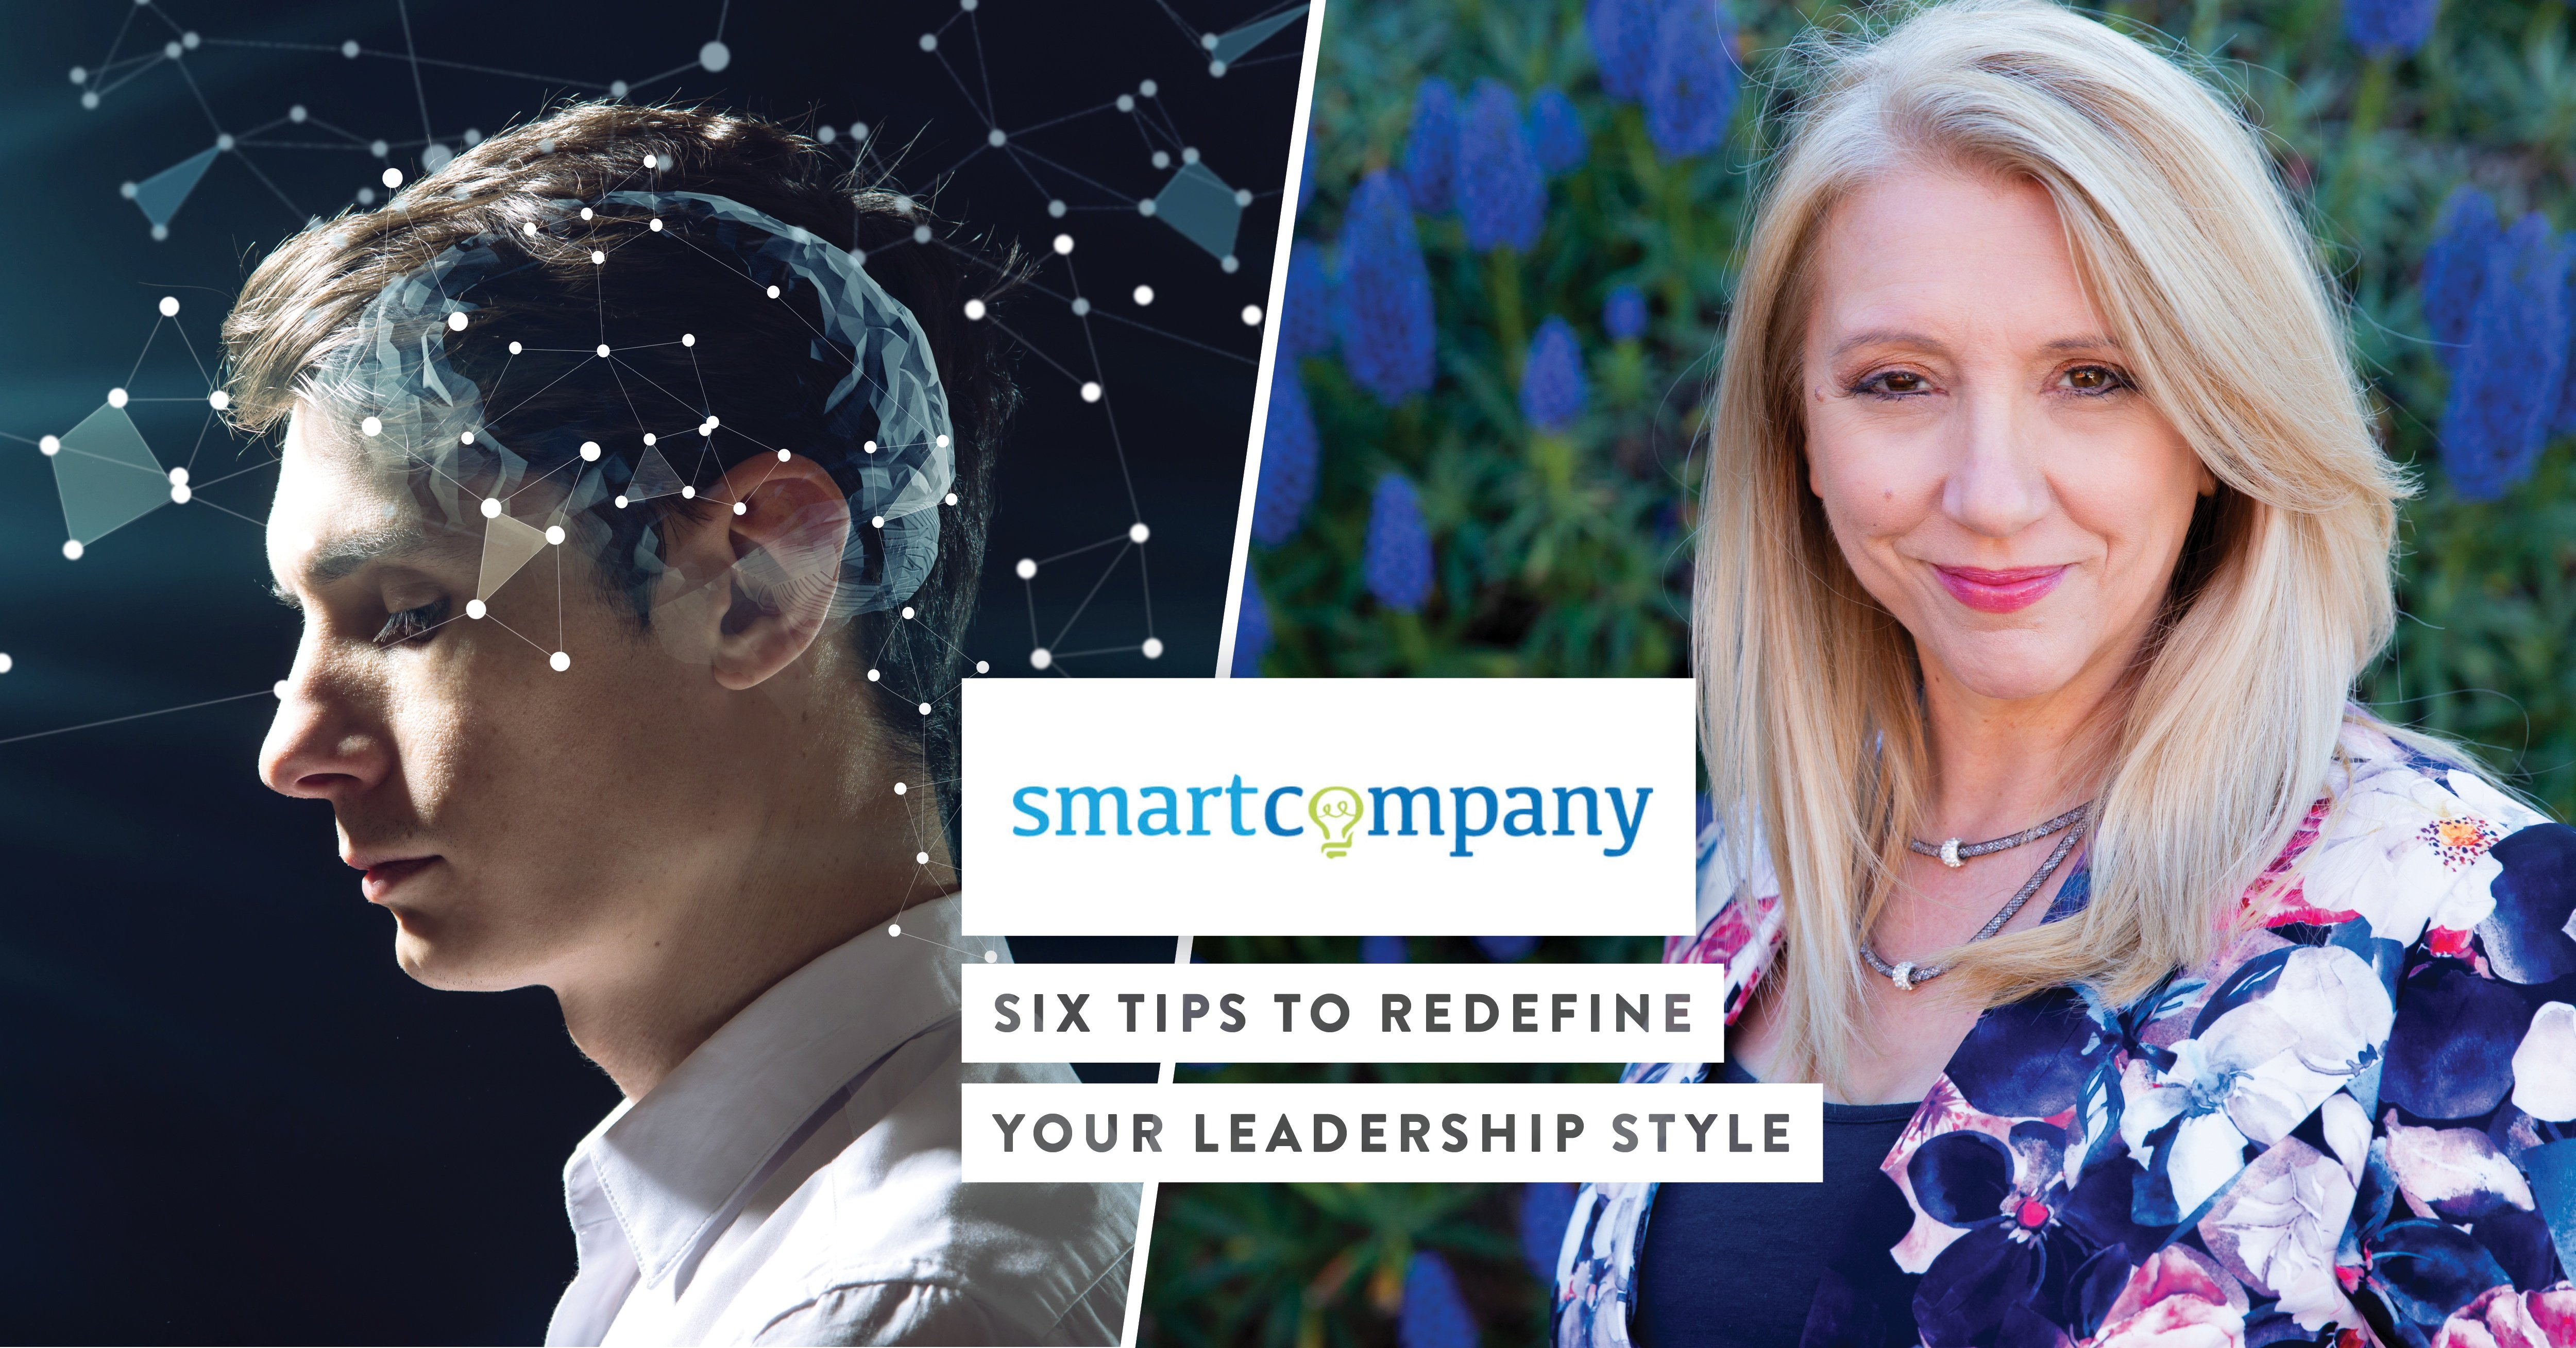 smart-company-six-tips-redefine-leadership-style